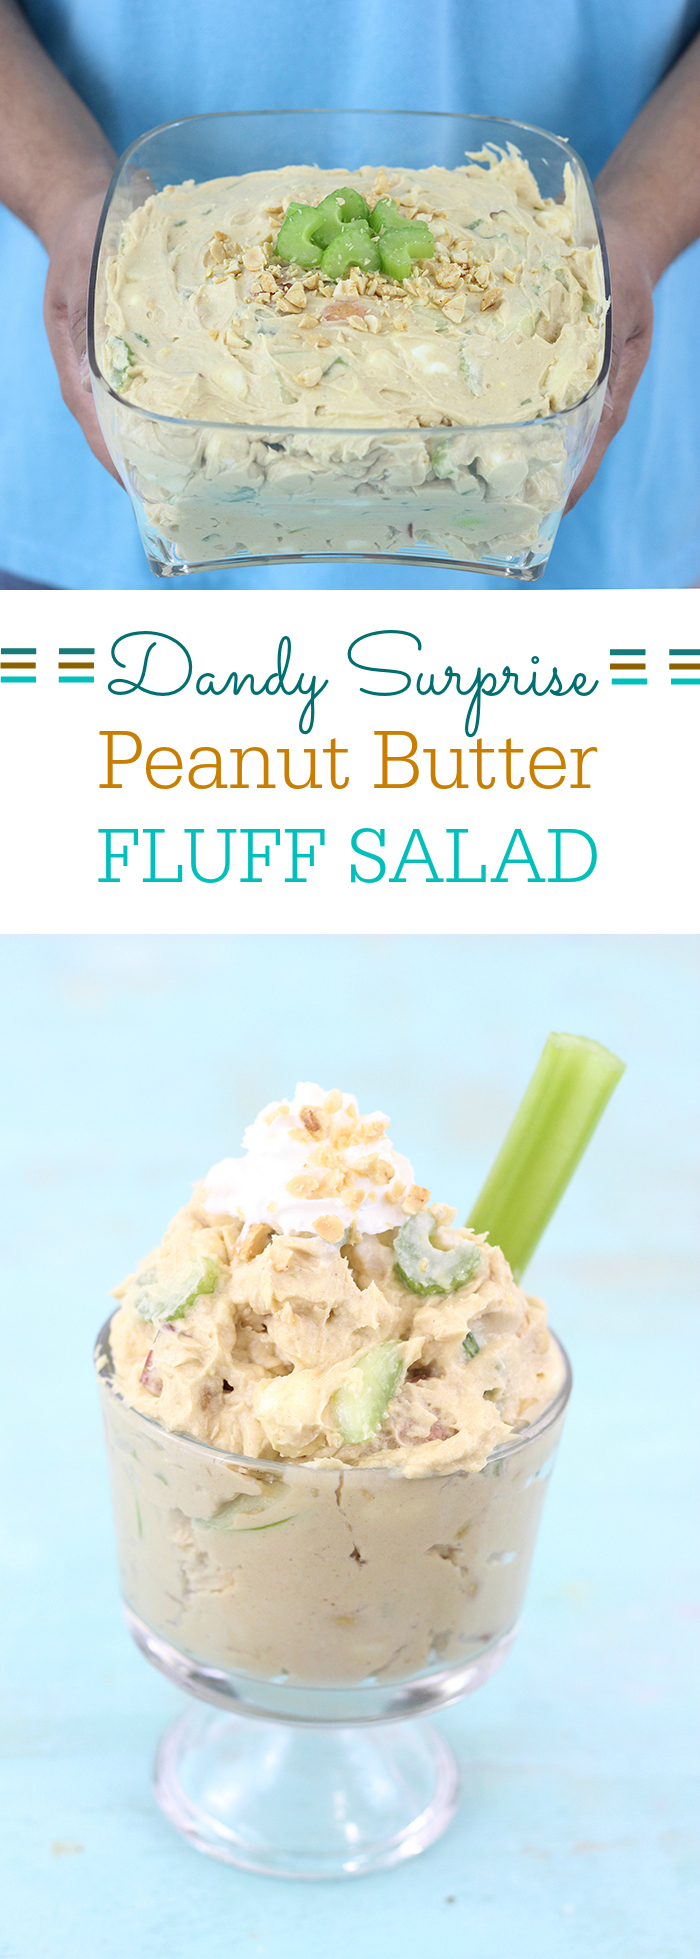 A whole new way to enjoy Fluff Salad! This version is TO DIE FOR! It's crunchy! Plus, who said you can't squeeze veggies in for dessert?